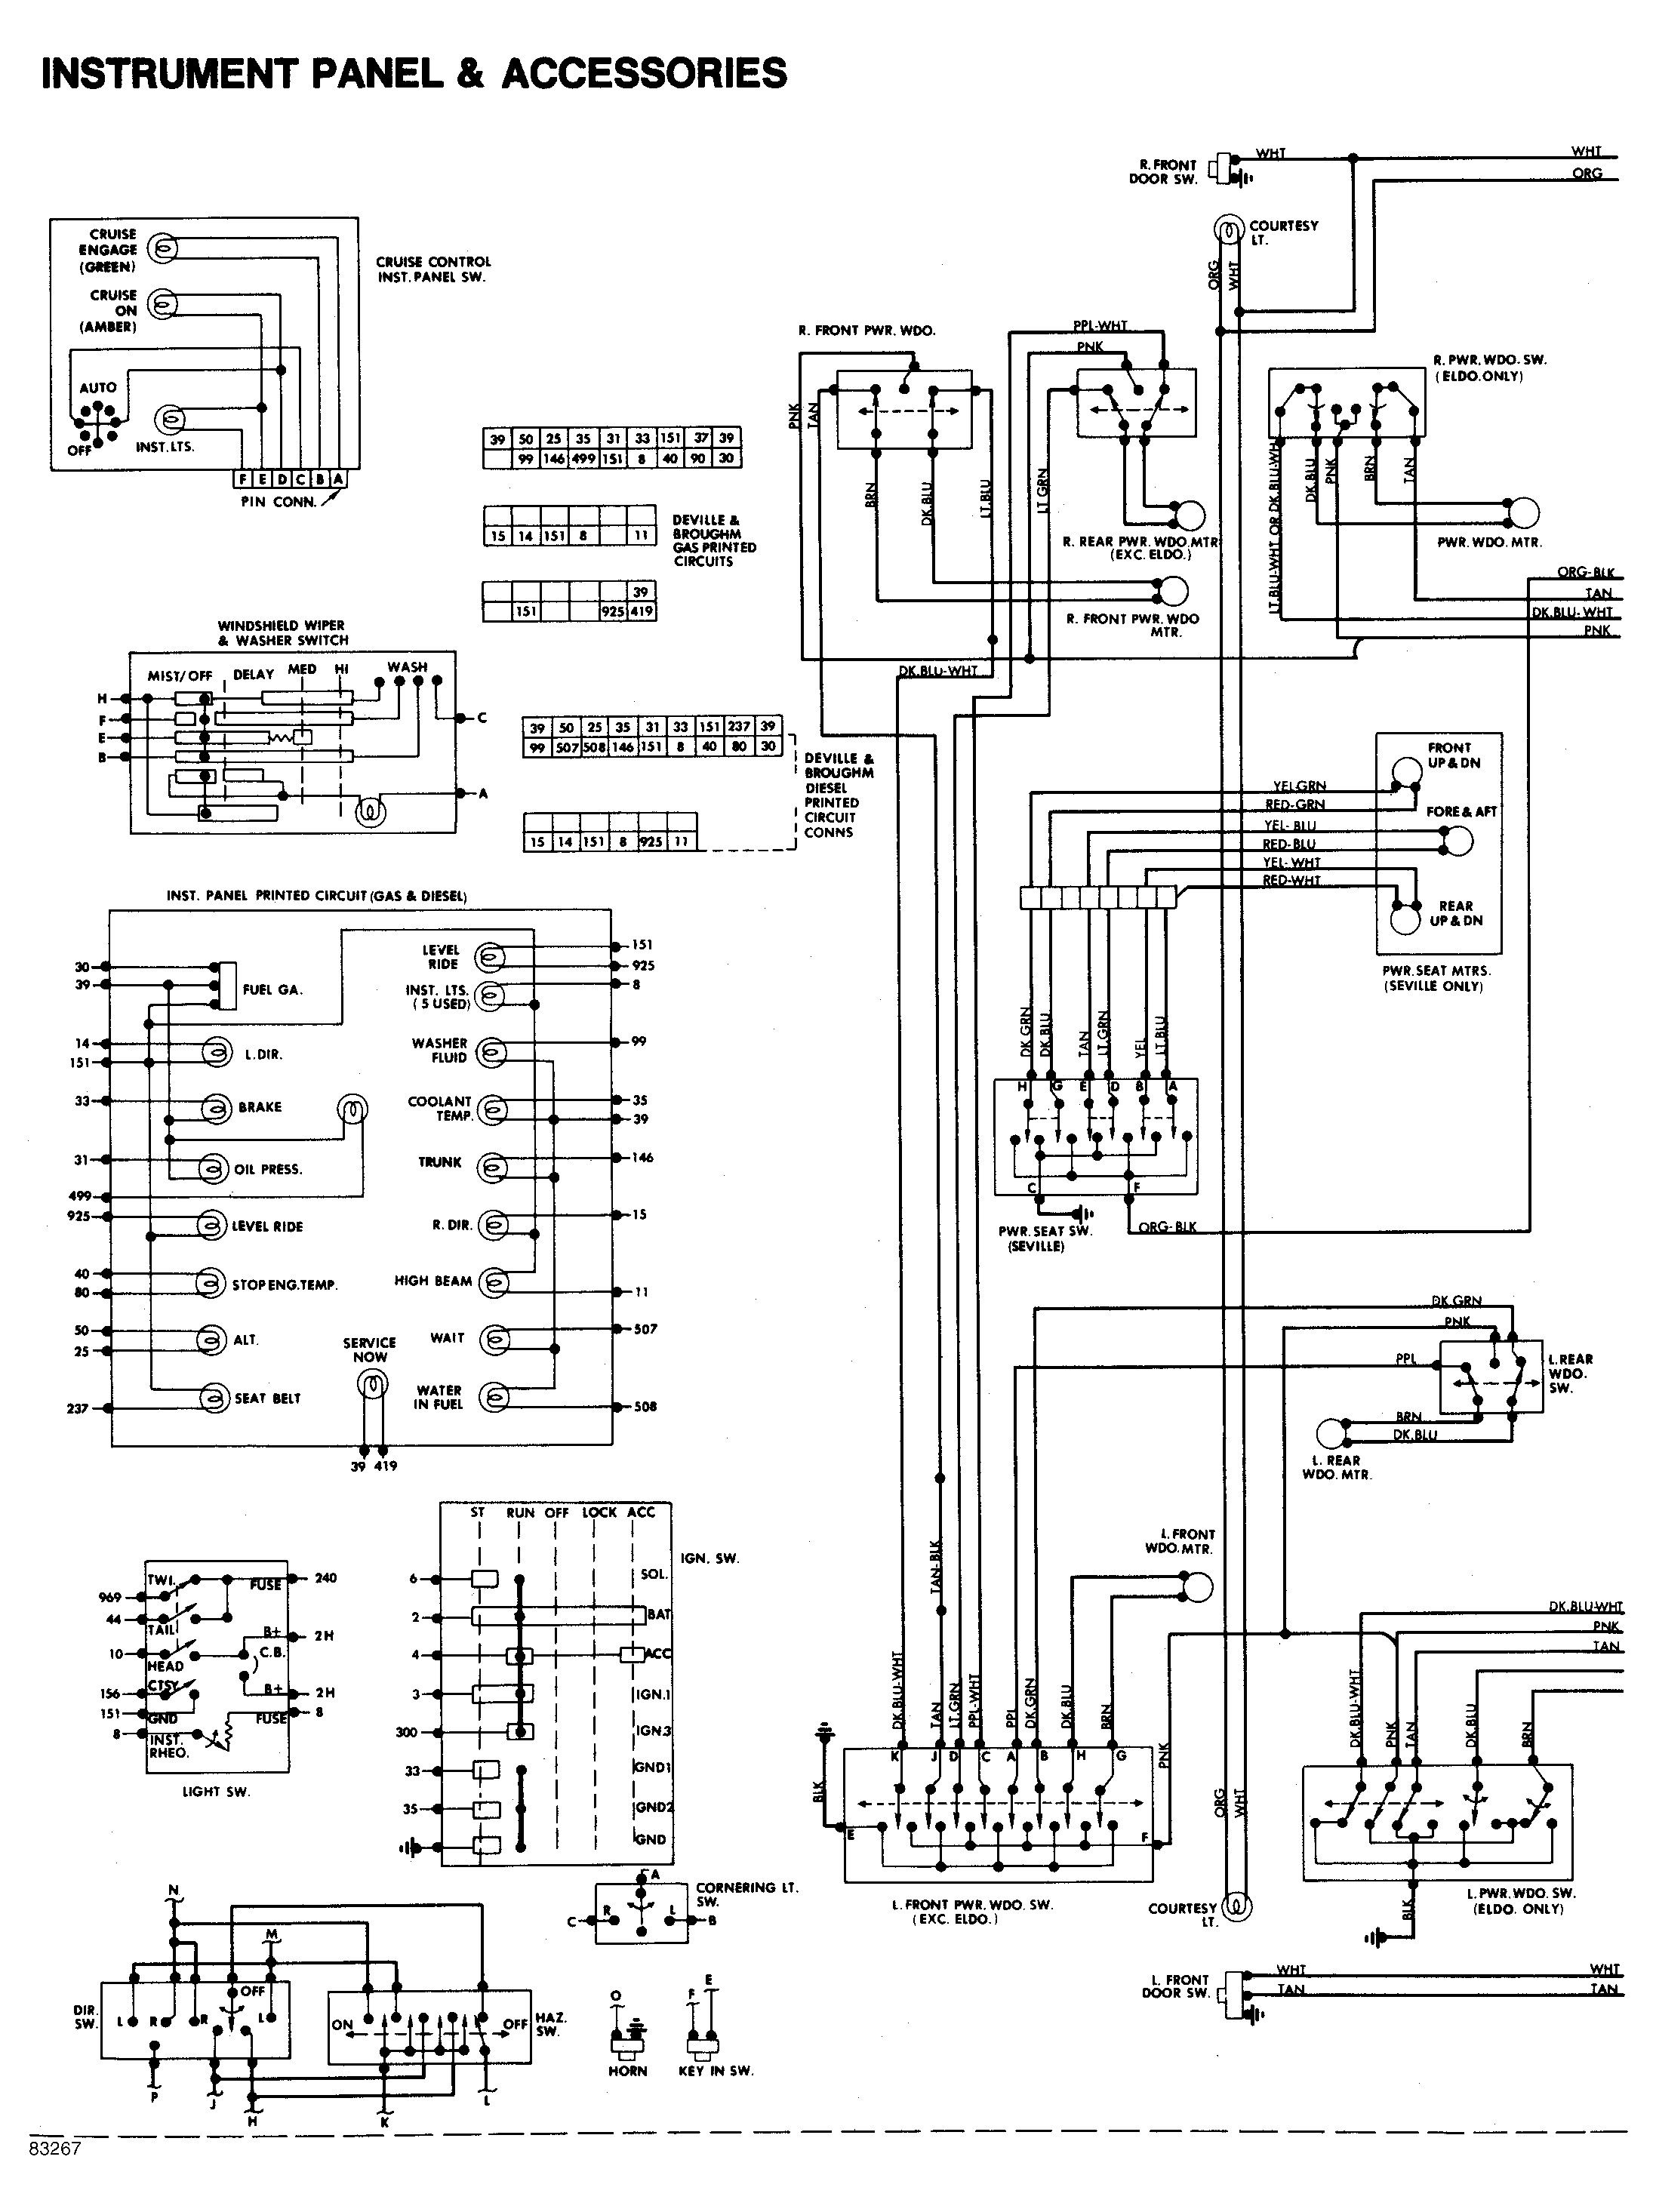 2000 honda accord stereo wiring diagram 2000 honda accord radio wiring diagram fresh daewoo ...